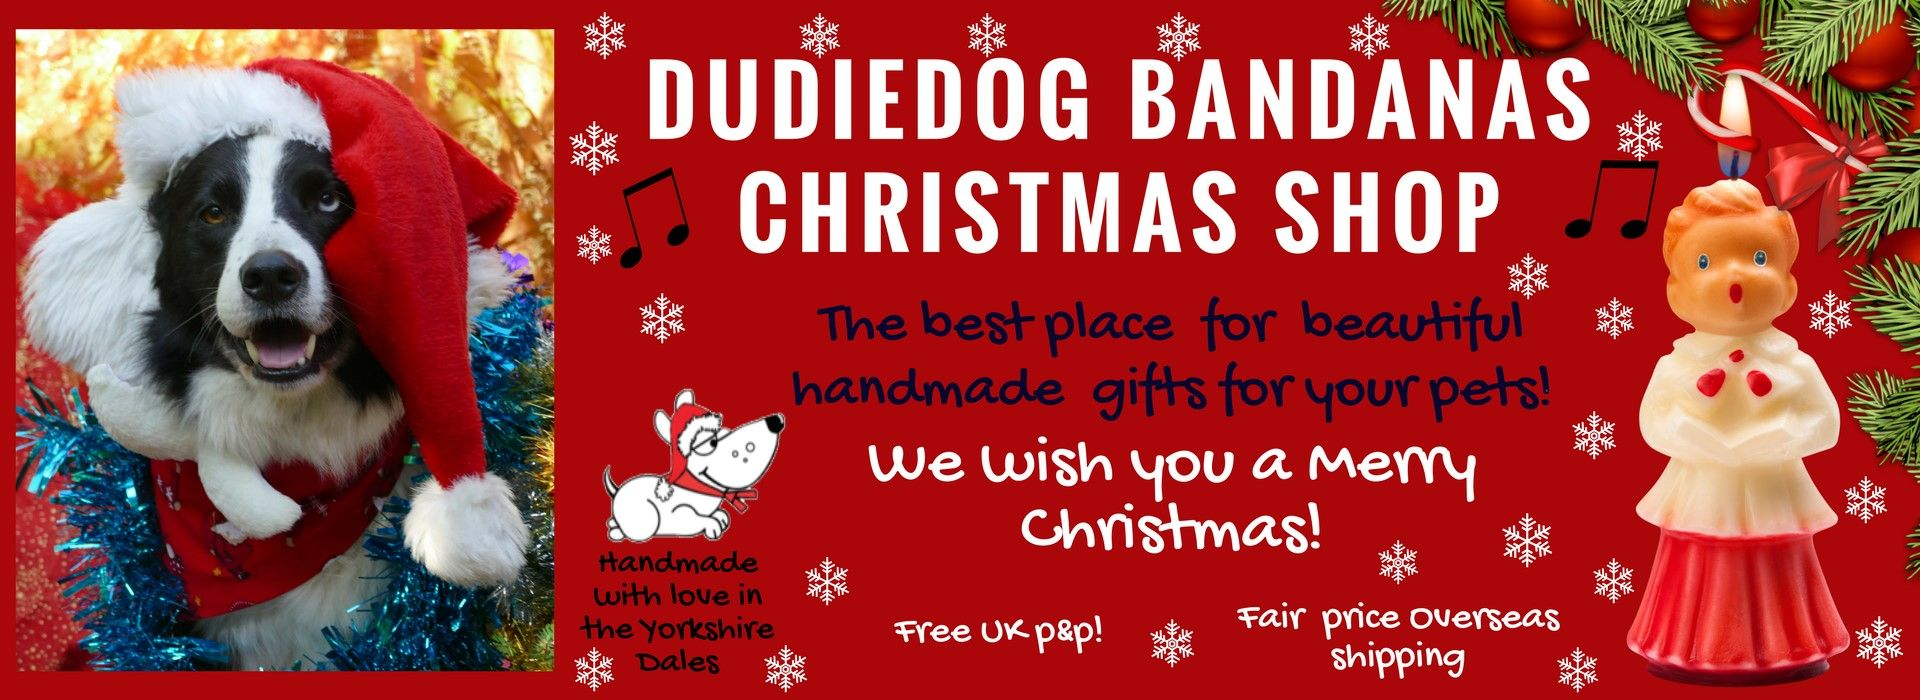 The best Christmas gifts for dogs in 2019 is Dudiedog Bandanas Christmas dog shop. Christmas dog Bandanas, Bow ties and bibs UK